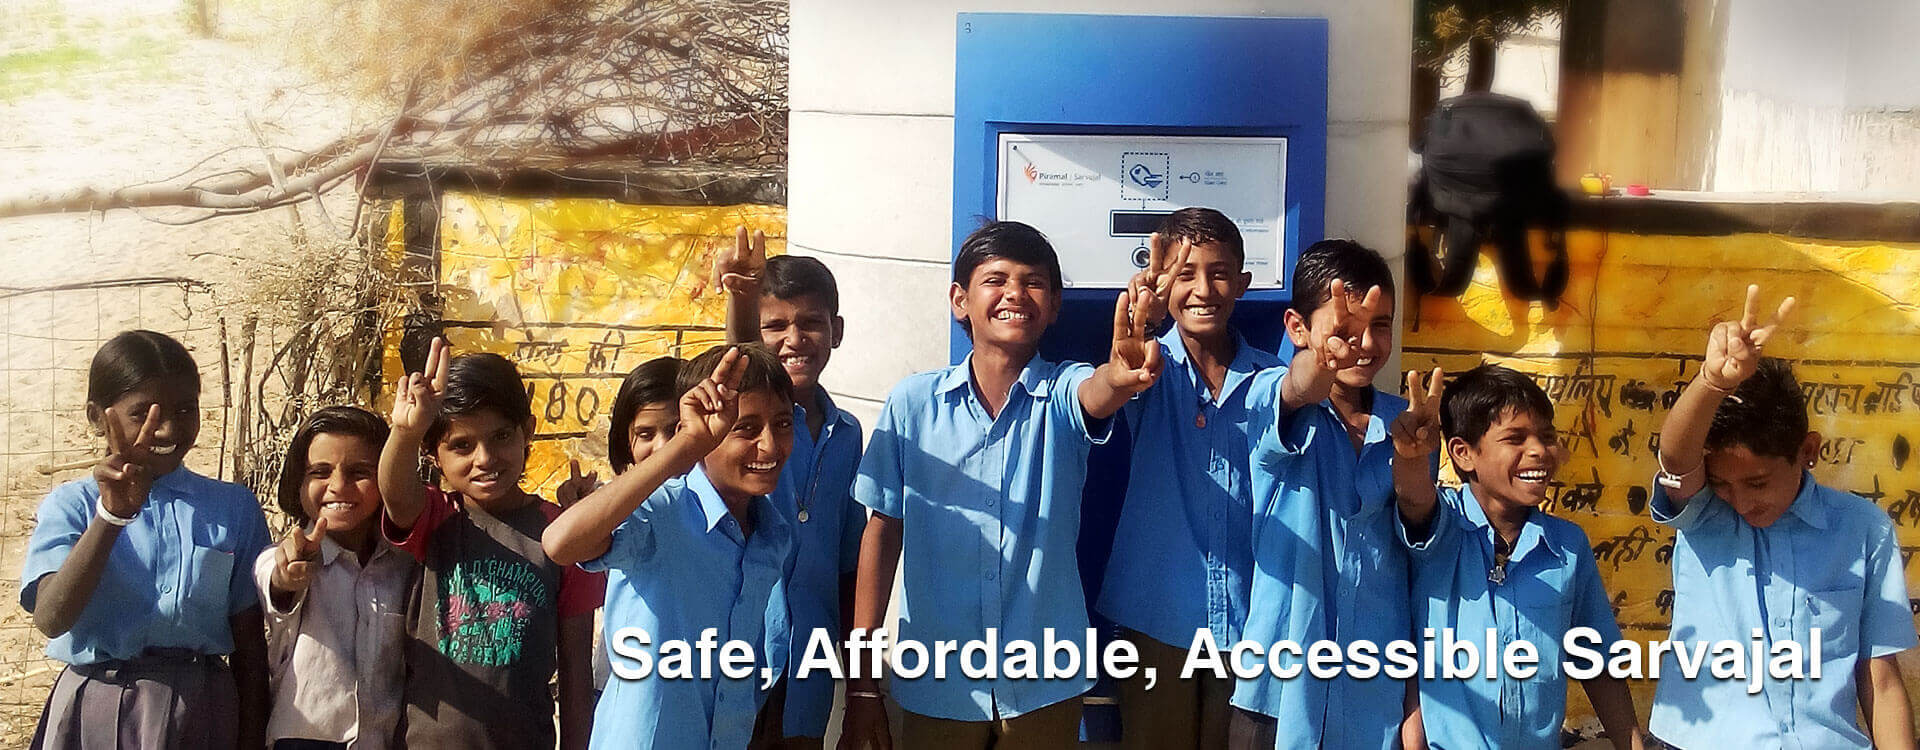 access-to-safe-water-to-school-children